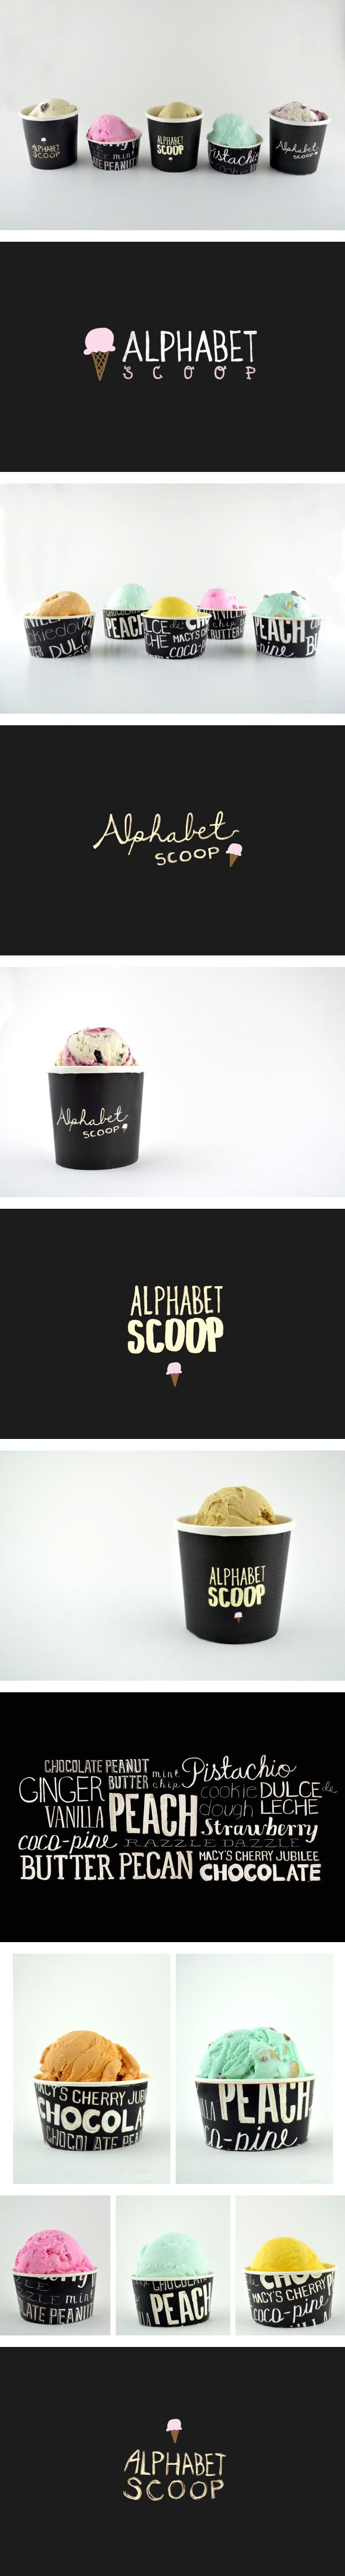 Alphabet Scoop Packaging by Rebecca Lim